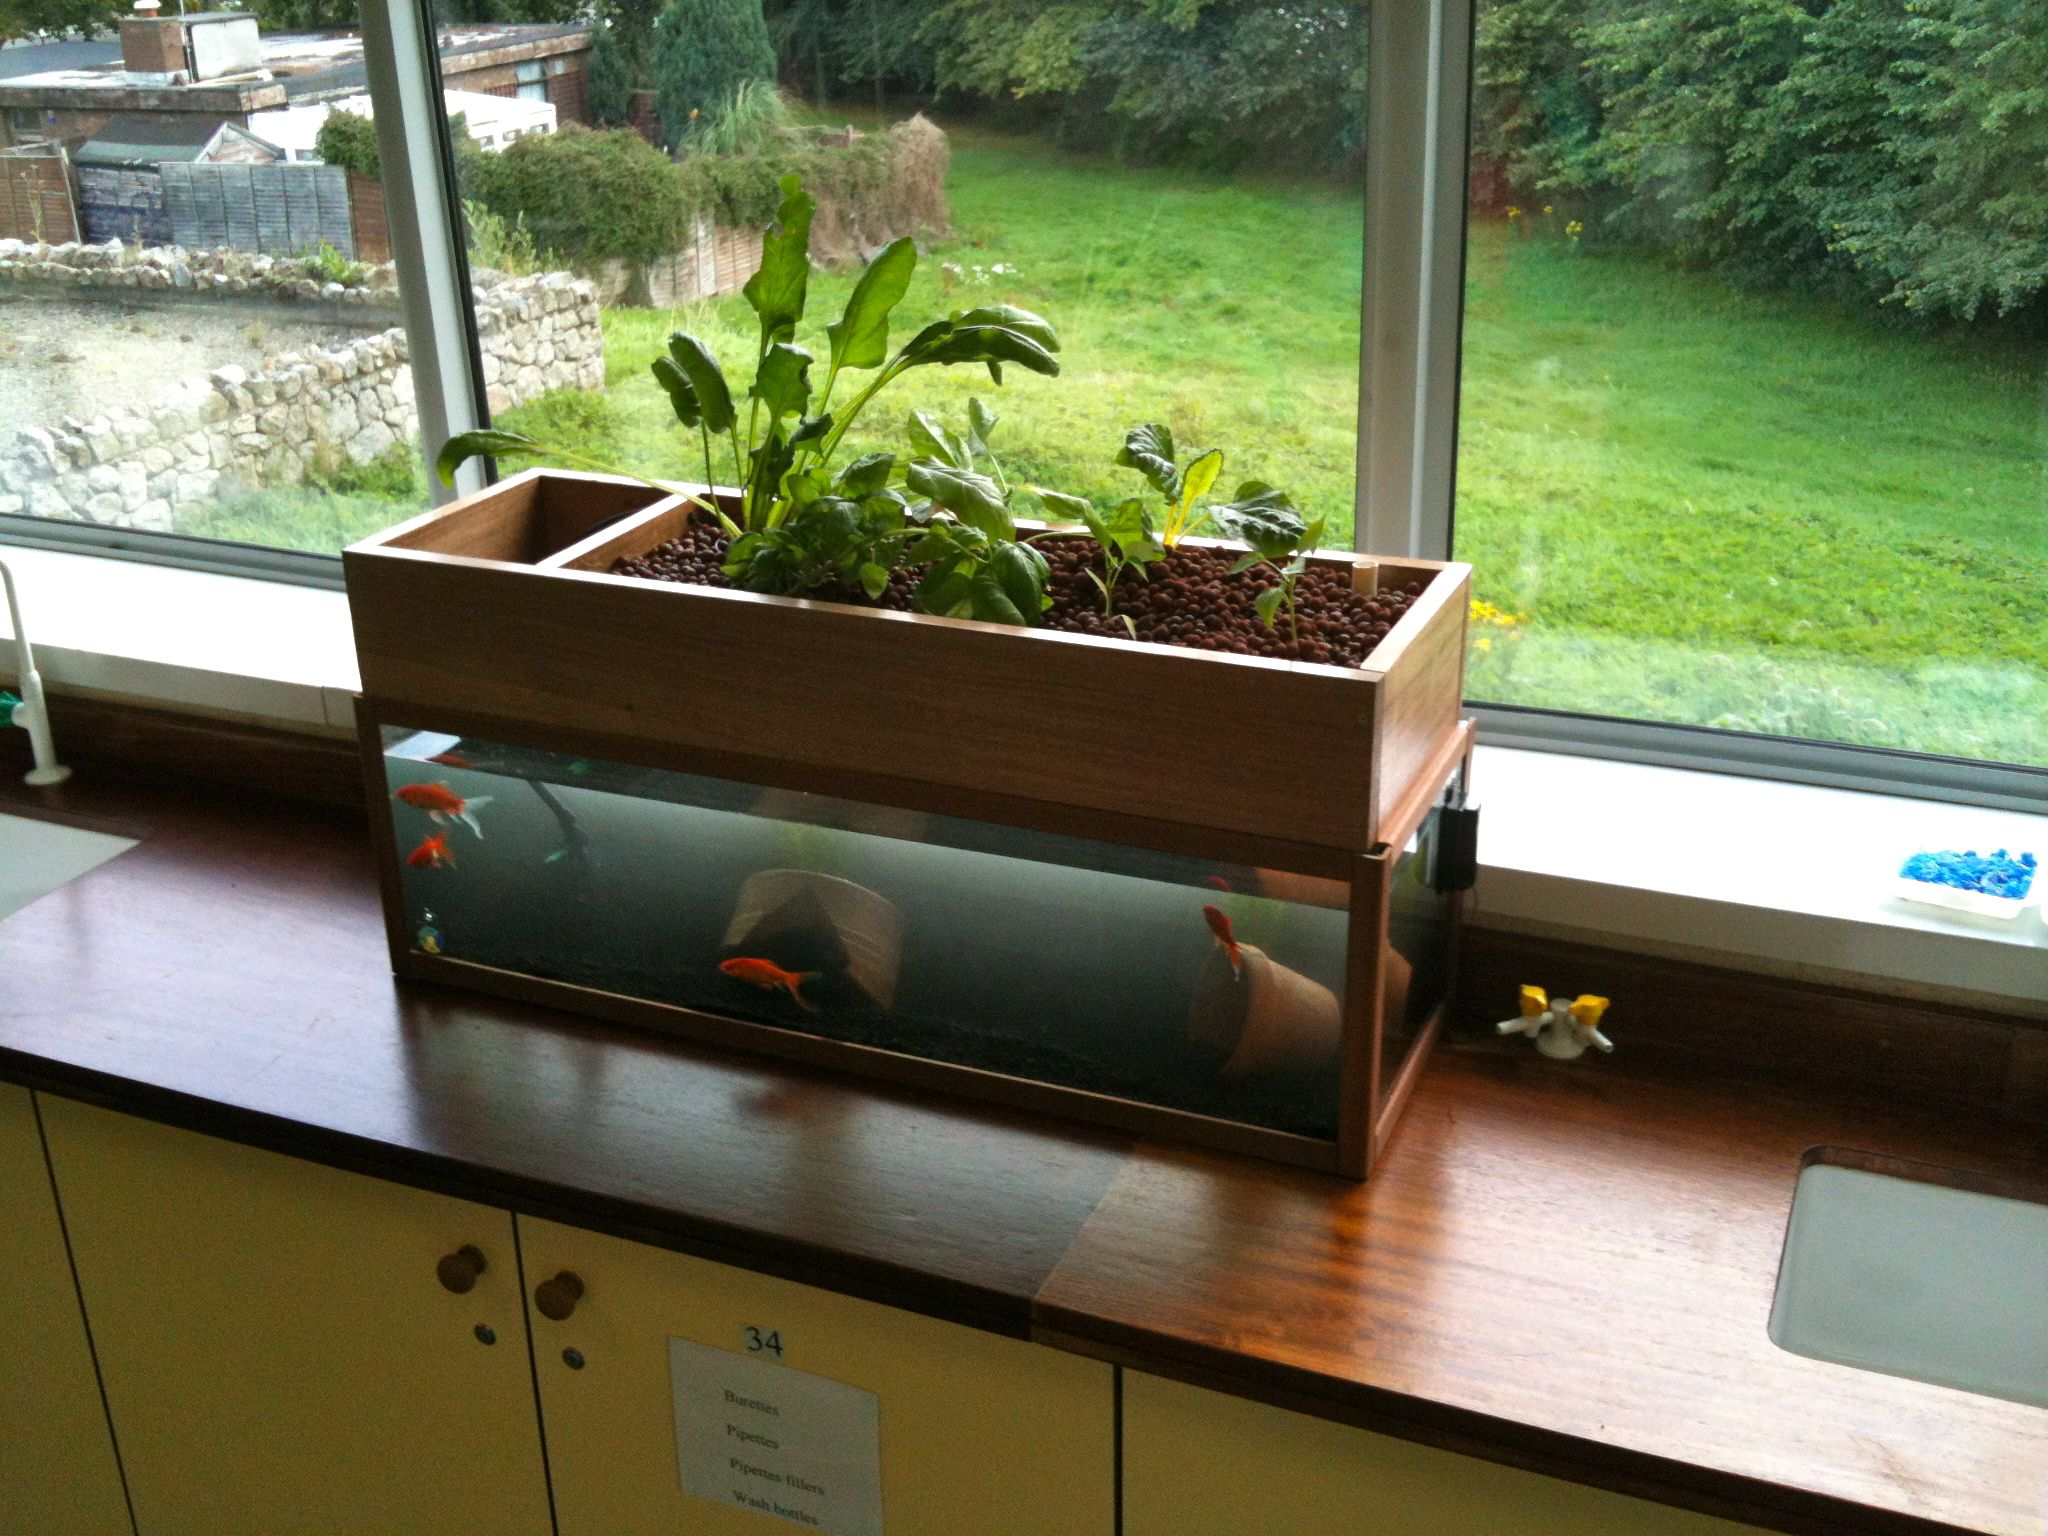 Aquaponics aquaponics system fish tanks and aquariums for Fish for aquaponics